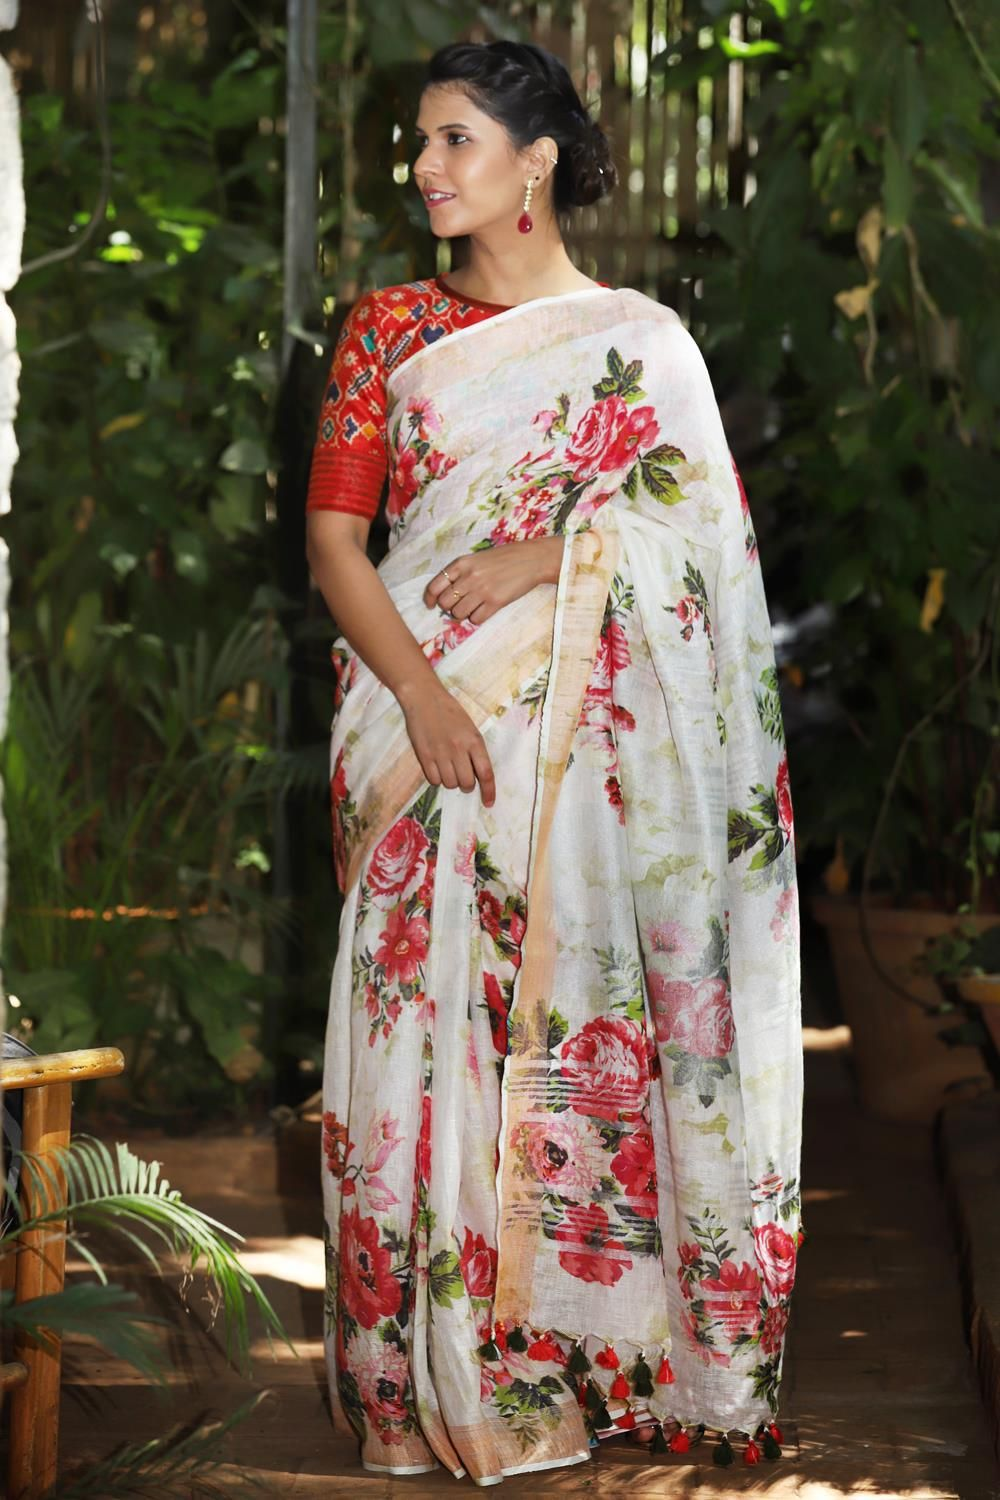 1bb8254939cc3 Off white linen saree with floral digital print and tissue border  saree   blouse  houseofblouse  indian  bollywood  style  designer  White  offwhite   red ...